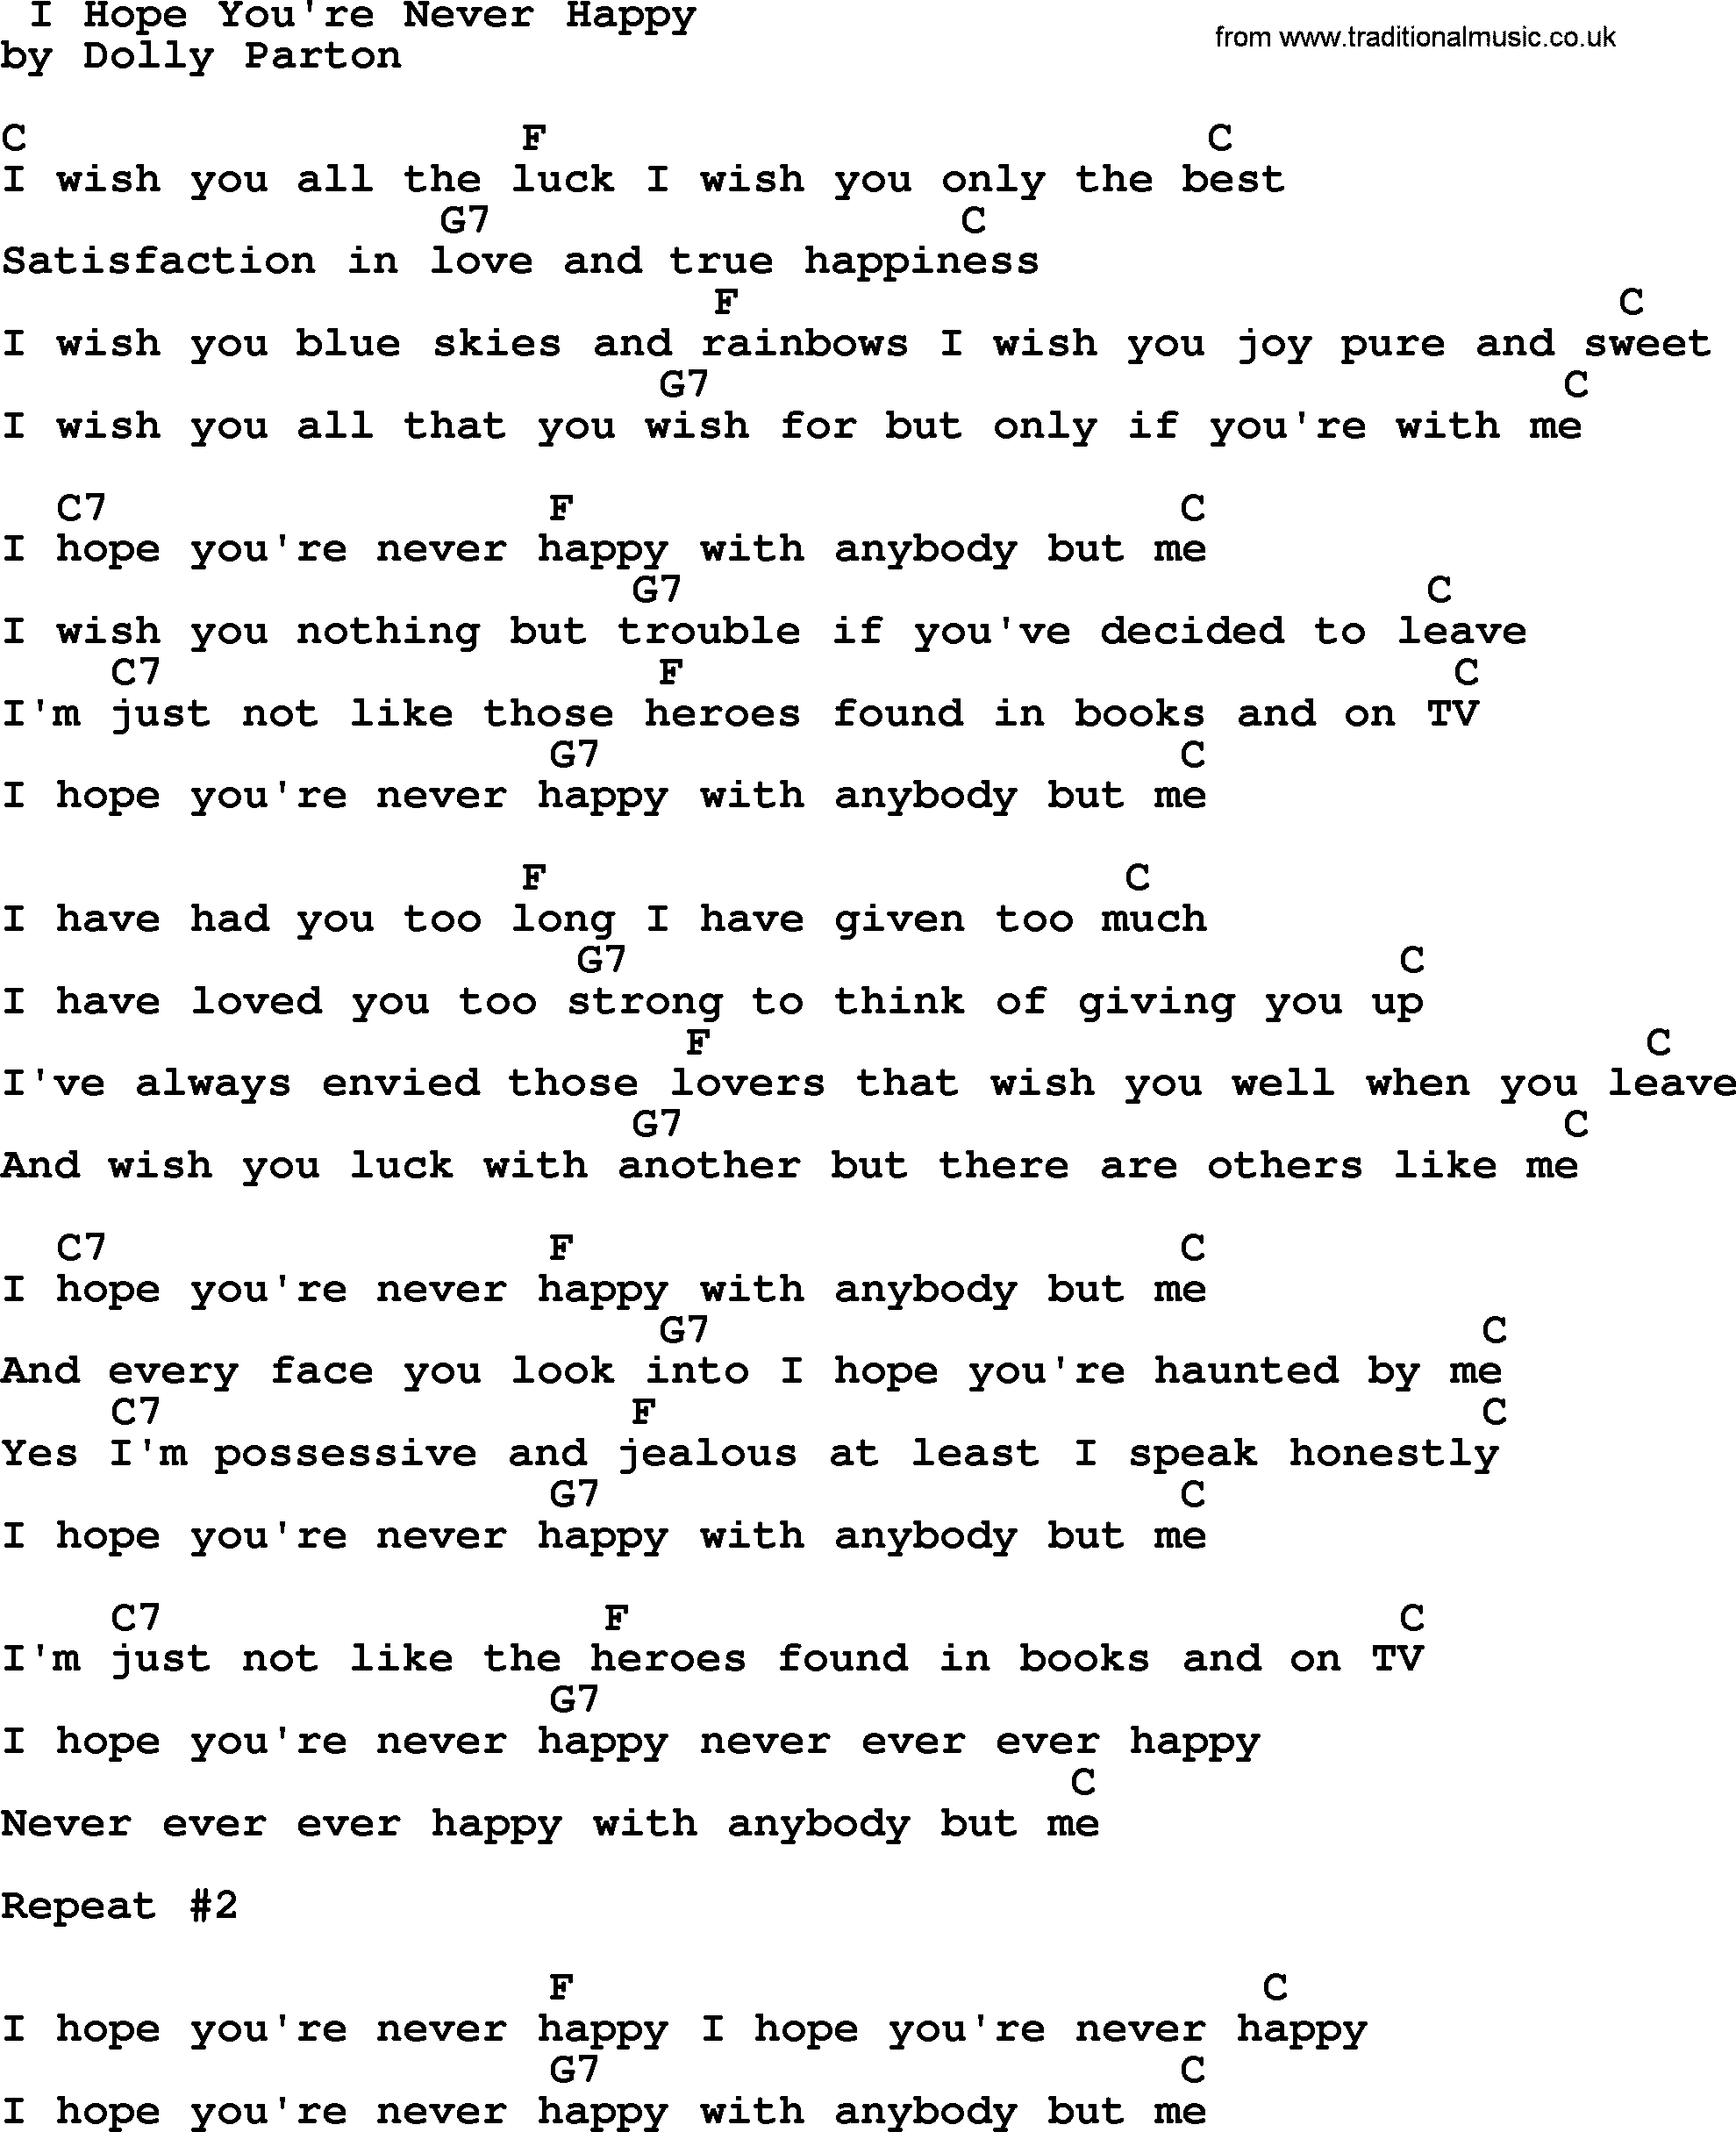 Dolly Parton song: I Hope You're Never Happy, lyrics and chords